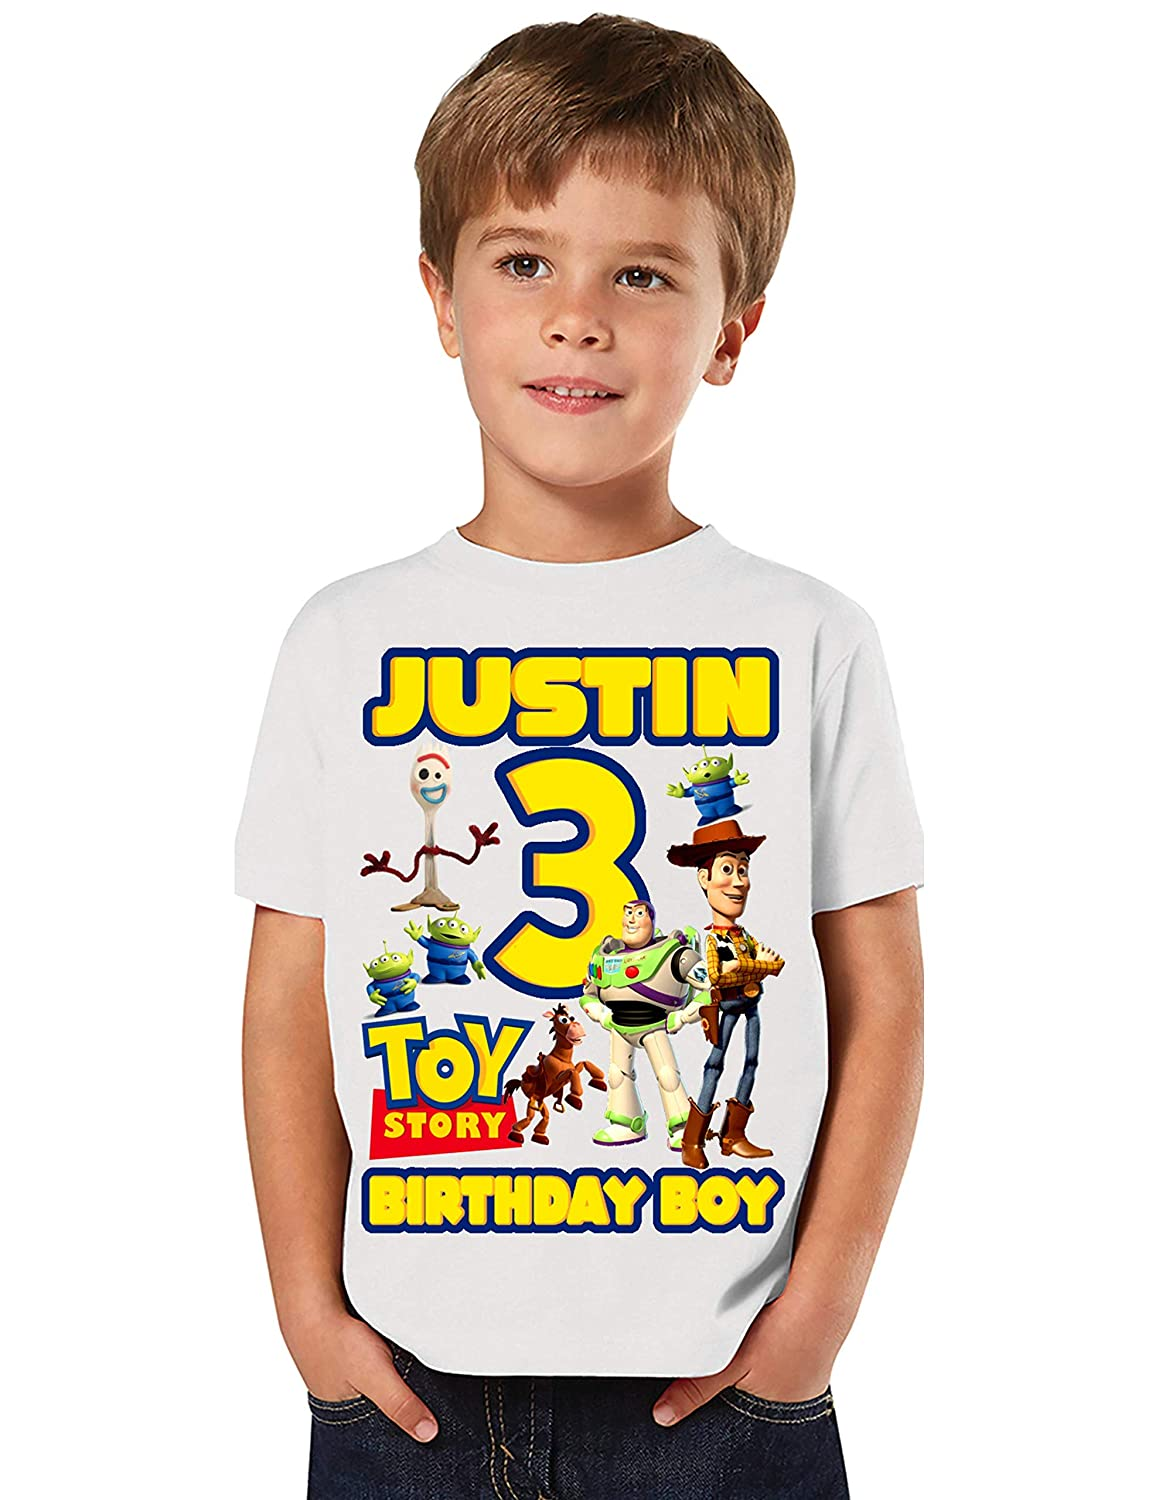 personalized birthday shirt name and age boy kids girls birthday shirt with tail